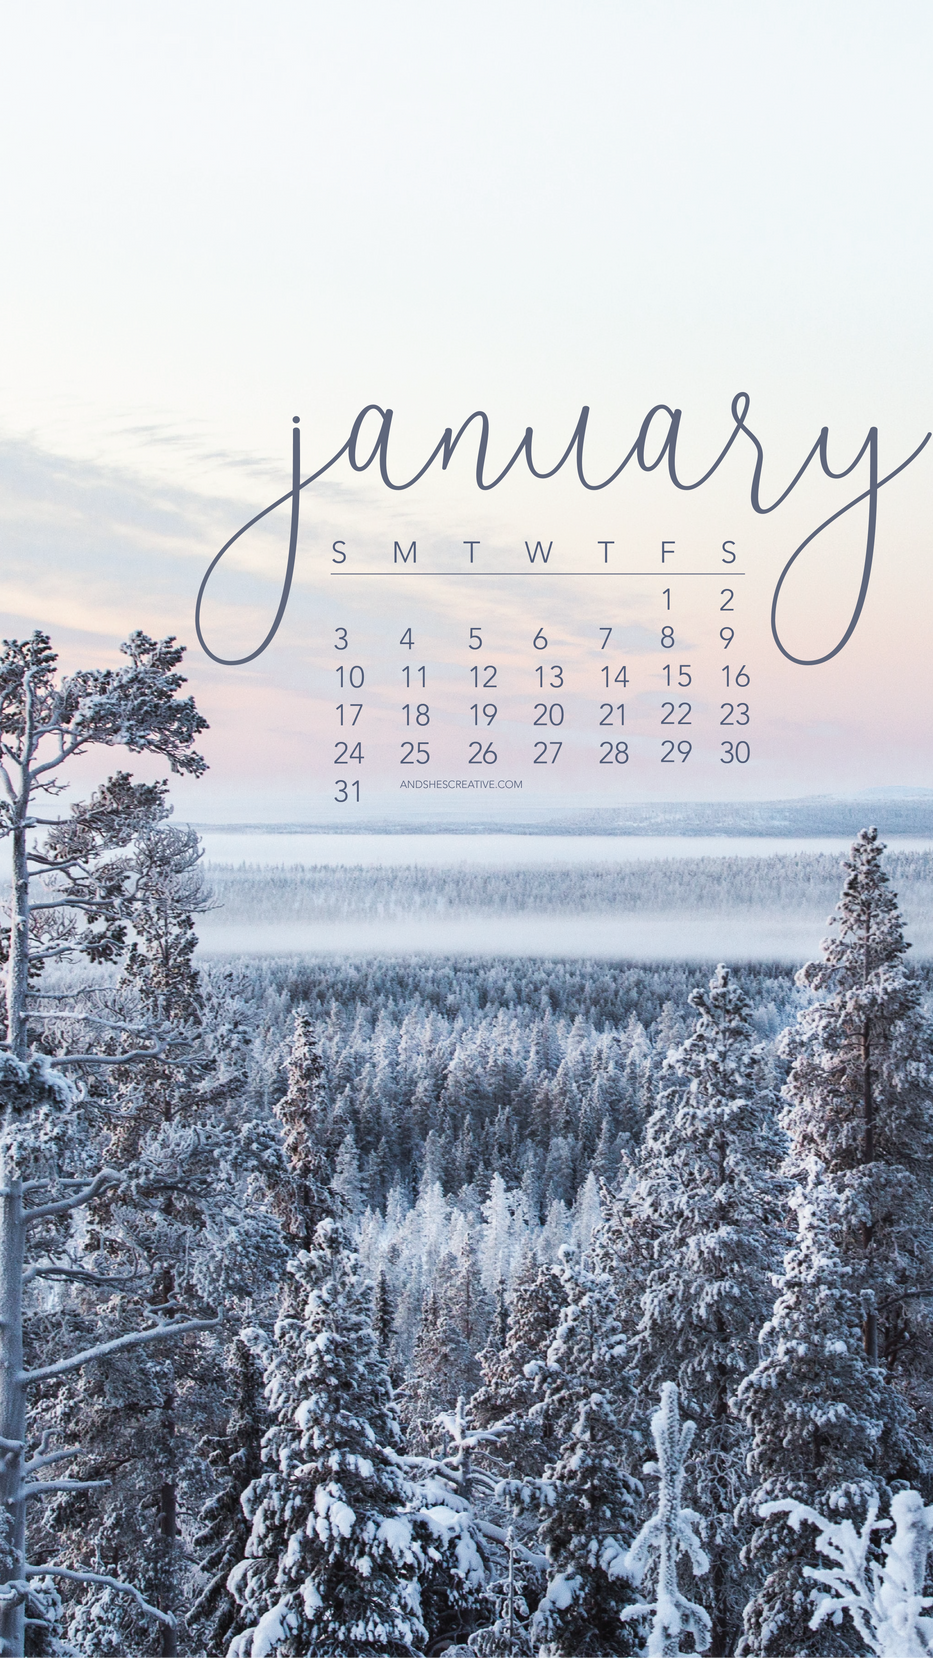 january mobile backgrounds-02.png